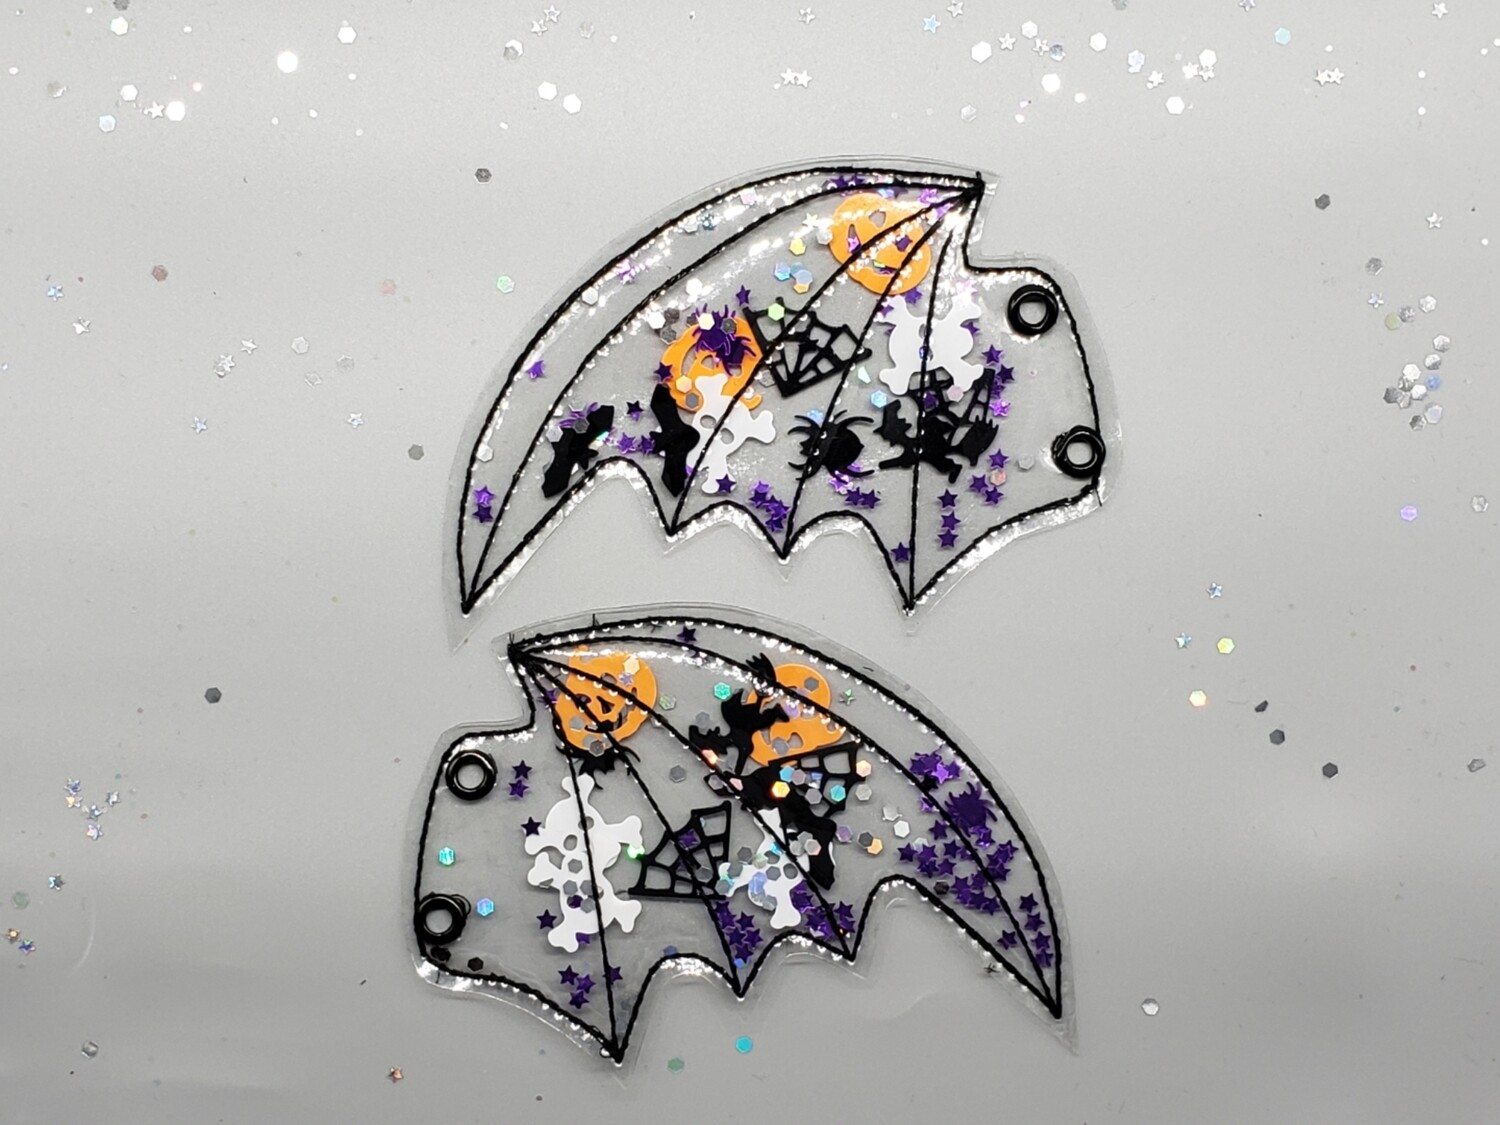 Transparent Bat wings larger size shoe wings with glitter shapes inside